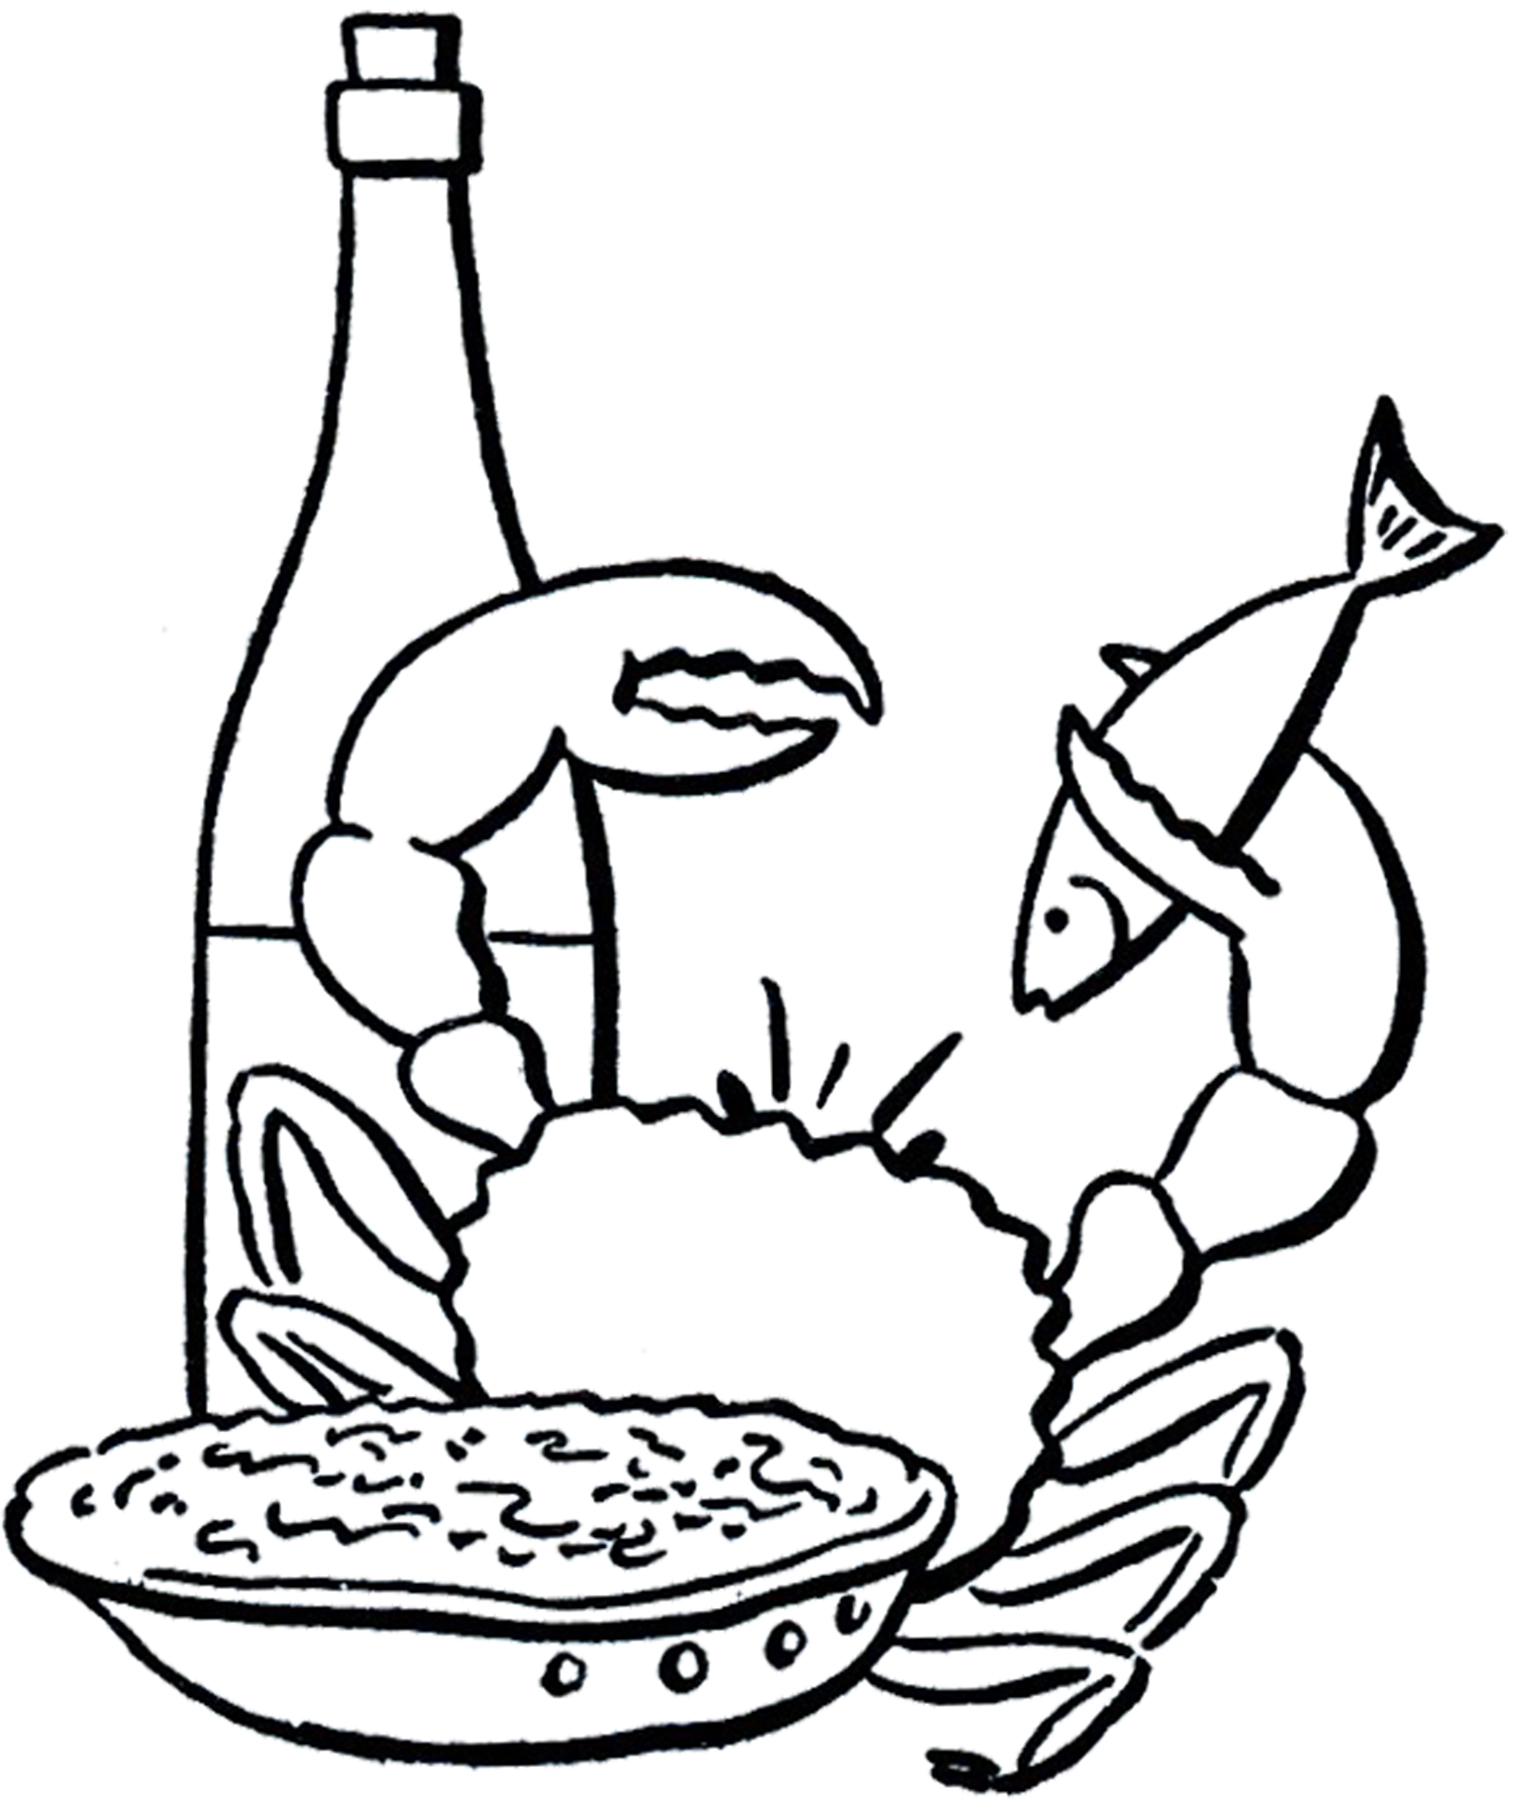 Fish dinner clipart free images 2